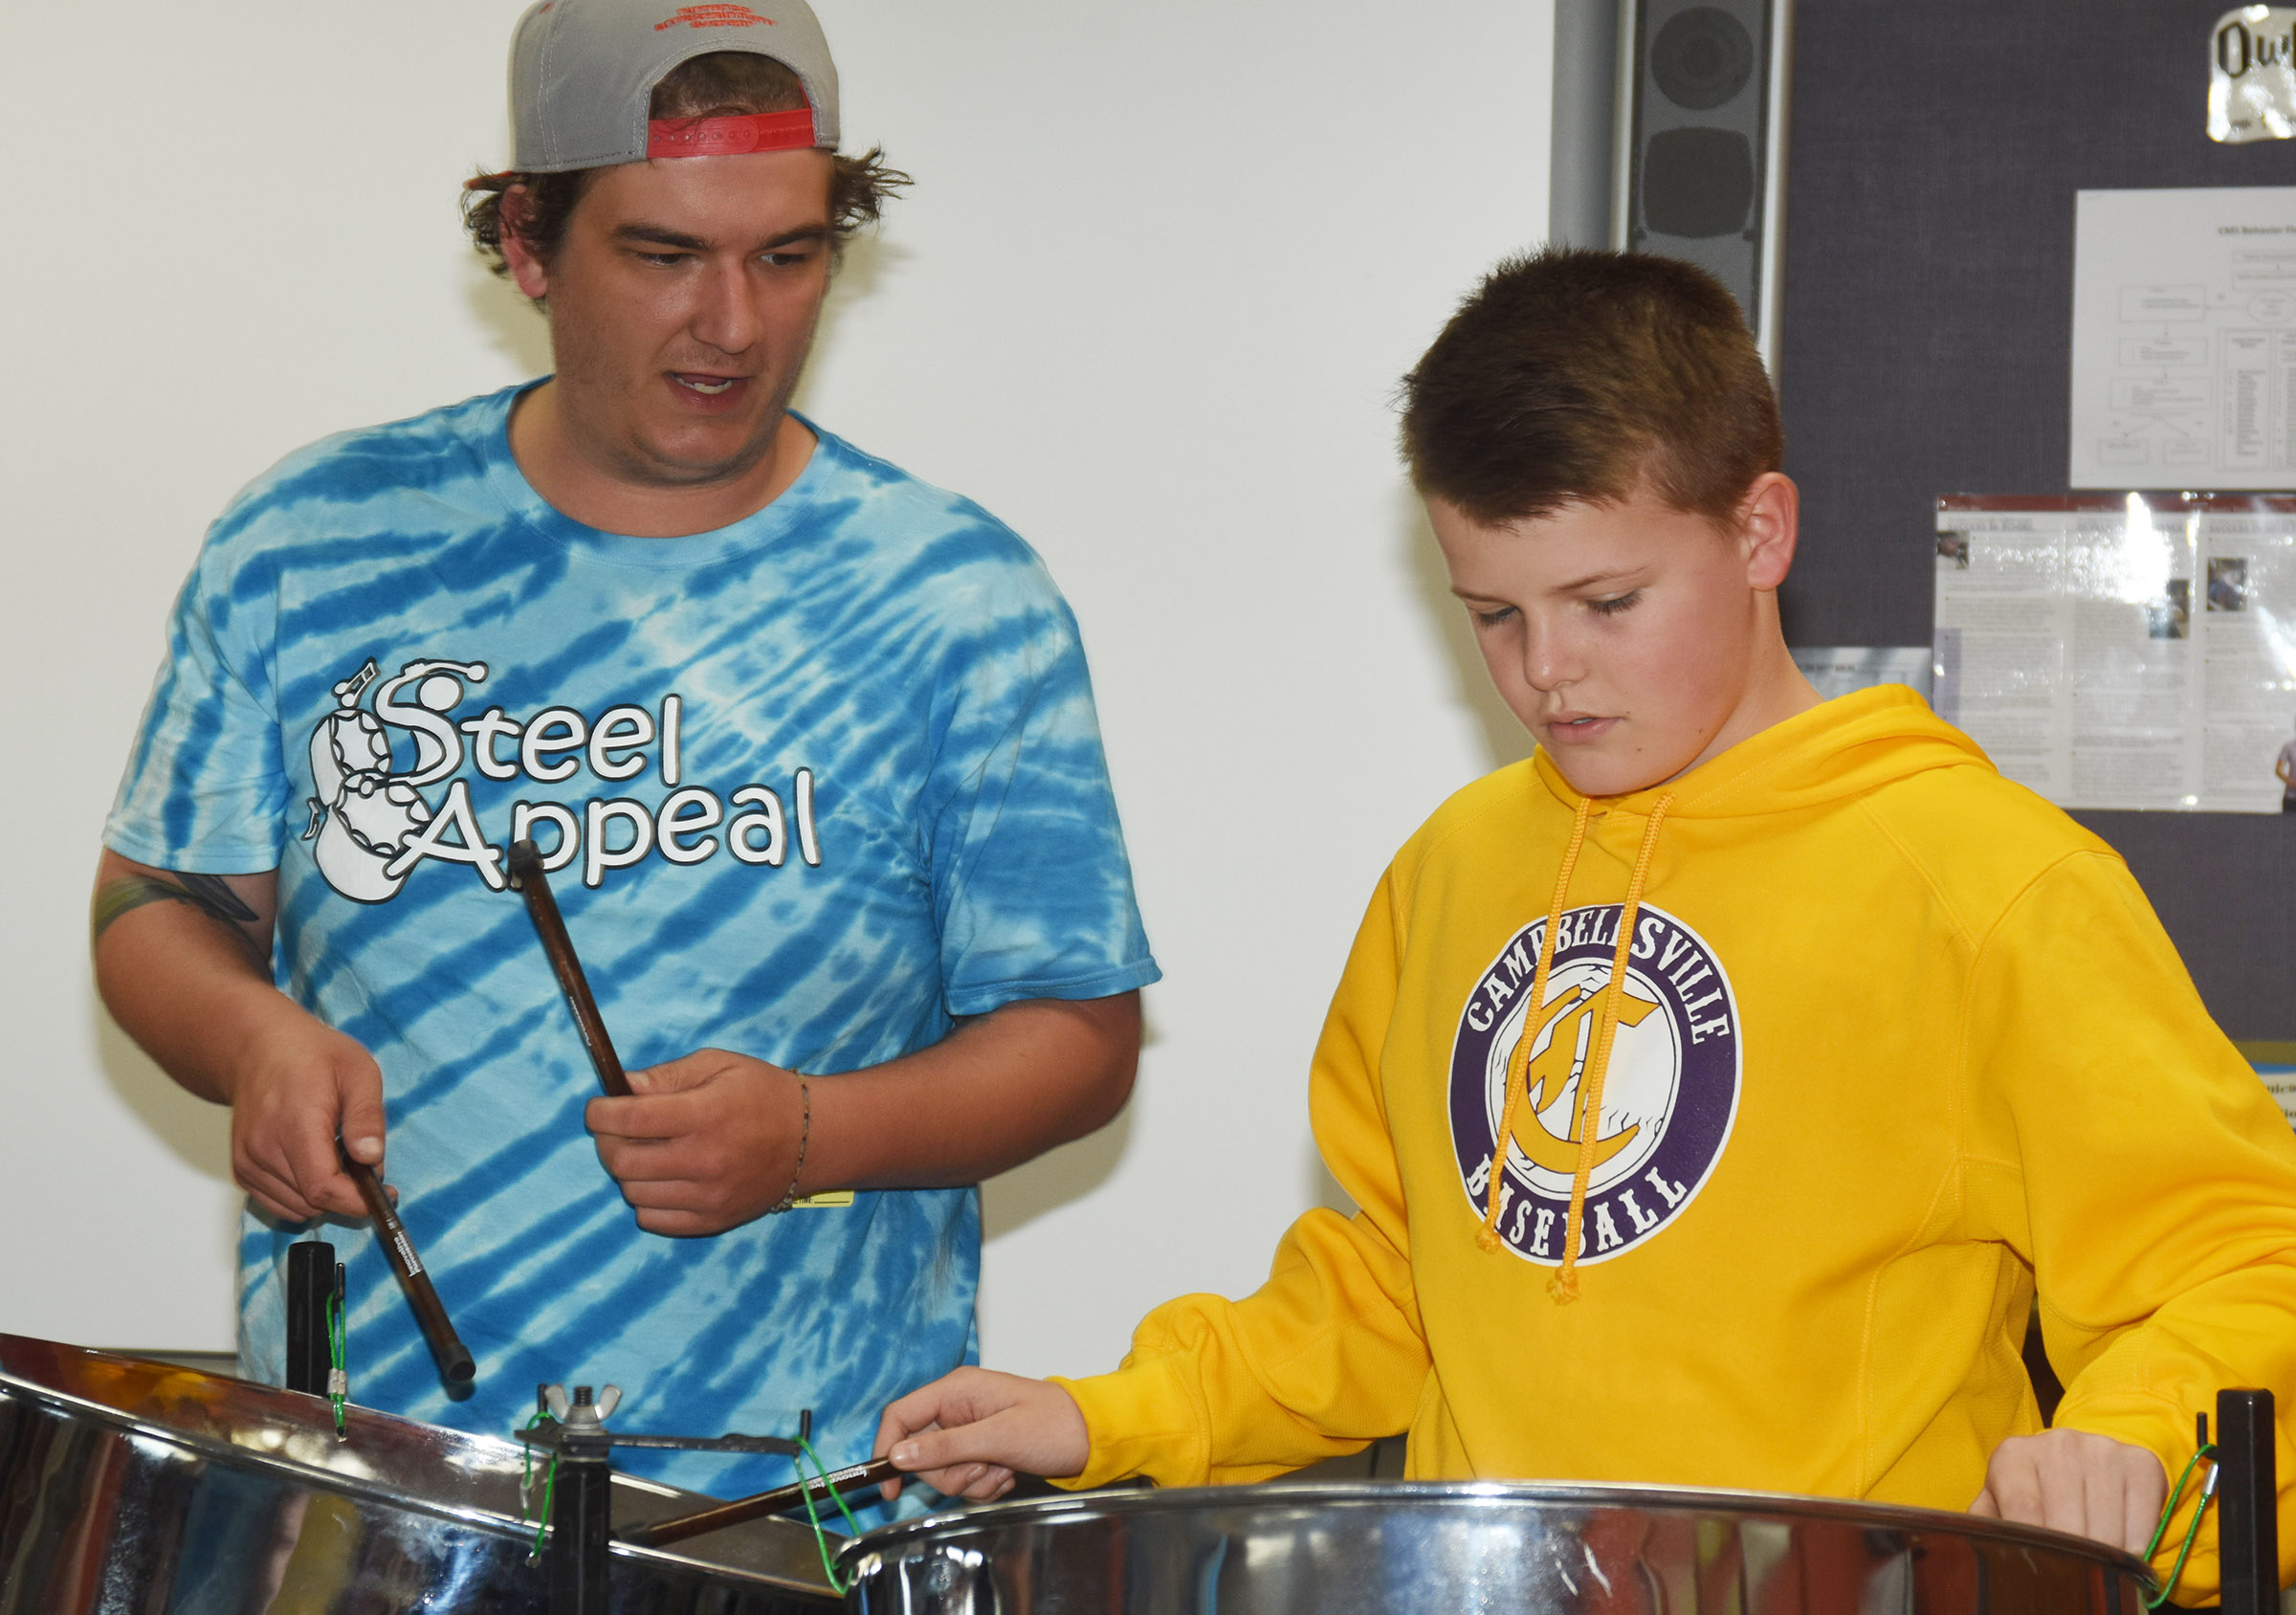 CU music students Jordan Hines helps seventh-grader Konner Forbis learn to play the steel drums.